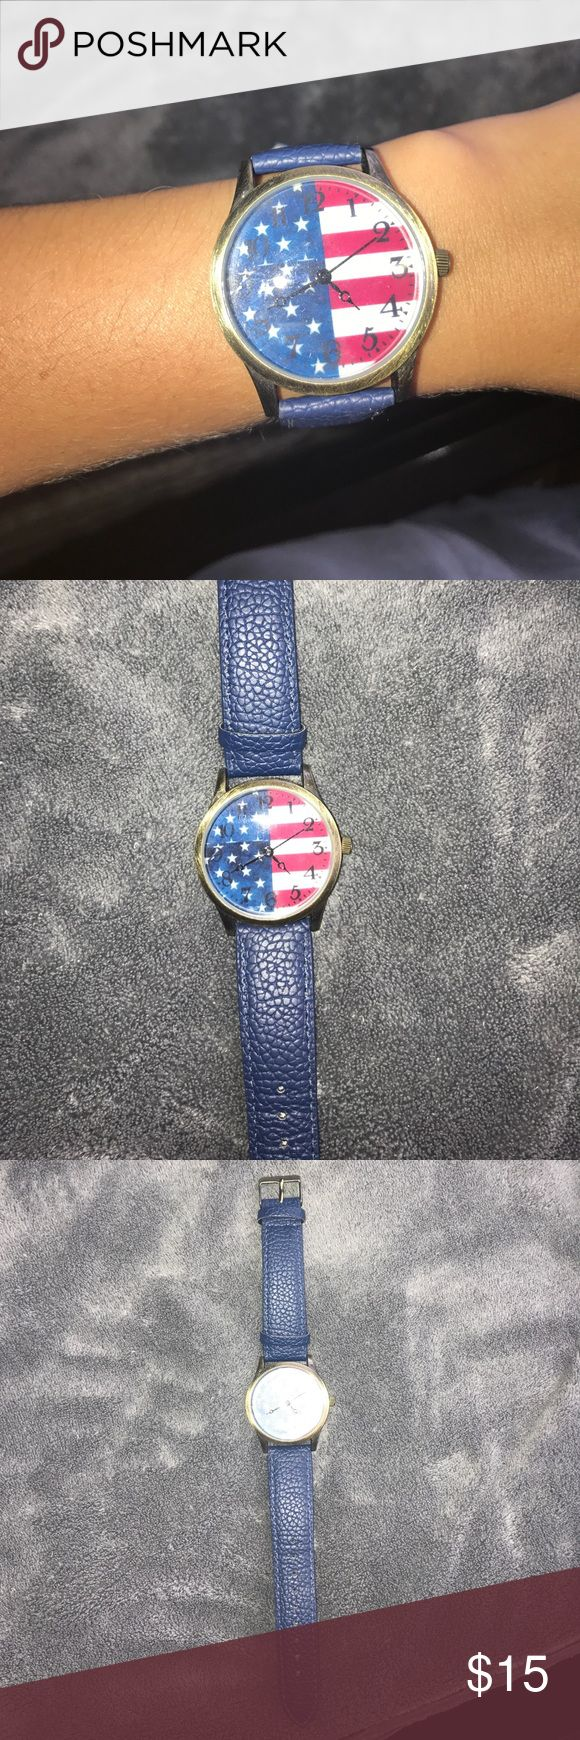 American flag watch Charming Charlie's. American flag face. Blue leather strap. Black arms. Rustic gold accents. Charming Charlie Accessories Watches